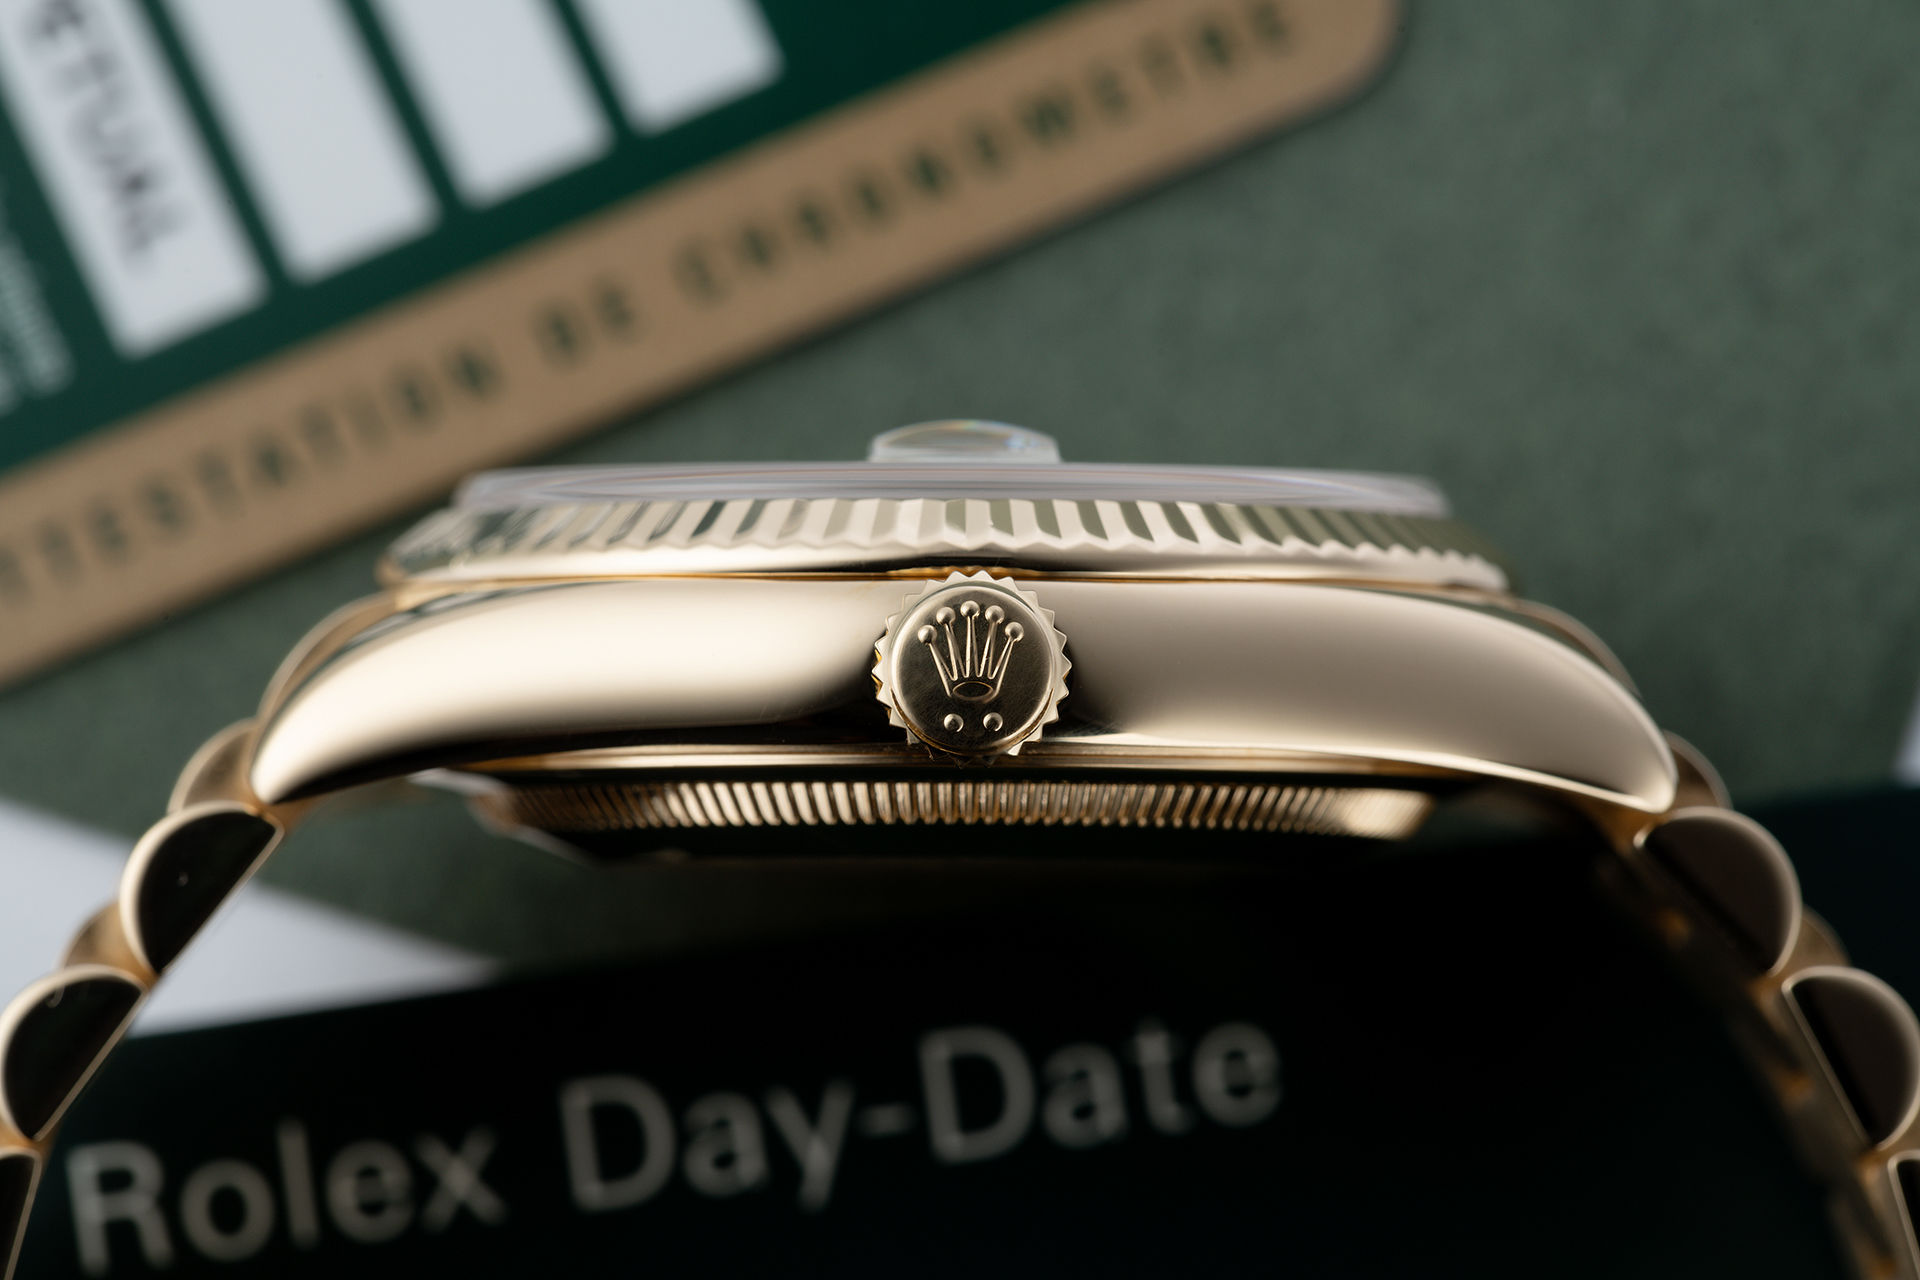 ref 118238 | Yellow Gold 'Box & Certificate' | Rolex Day-Date